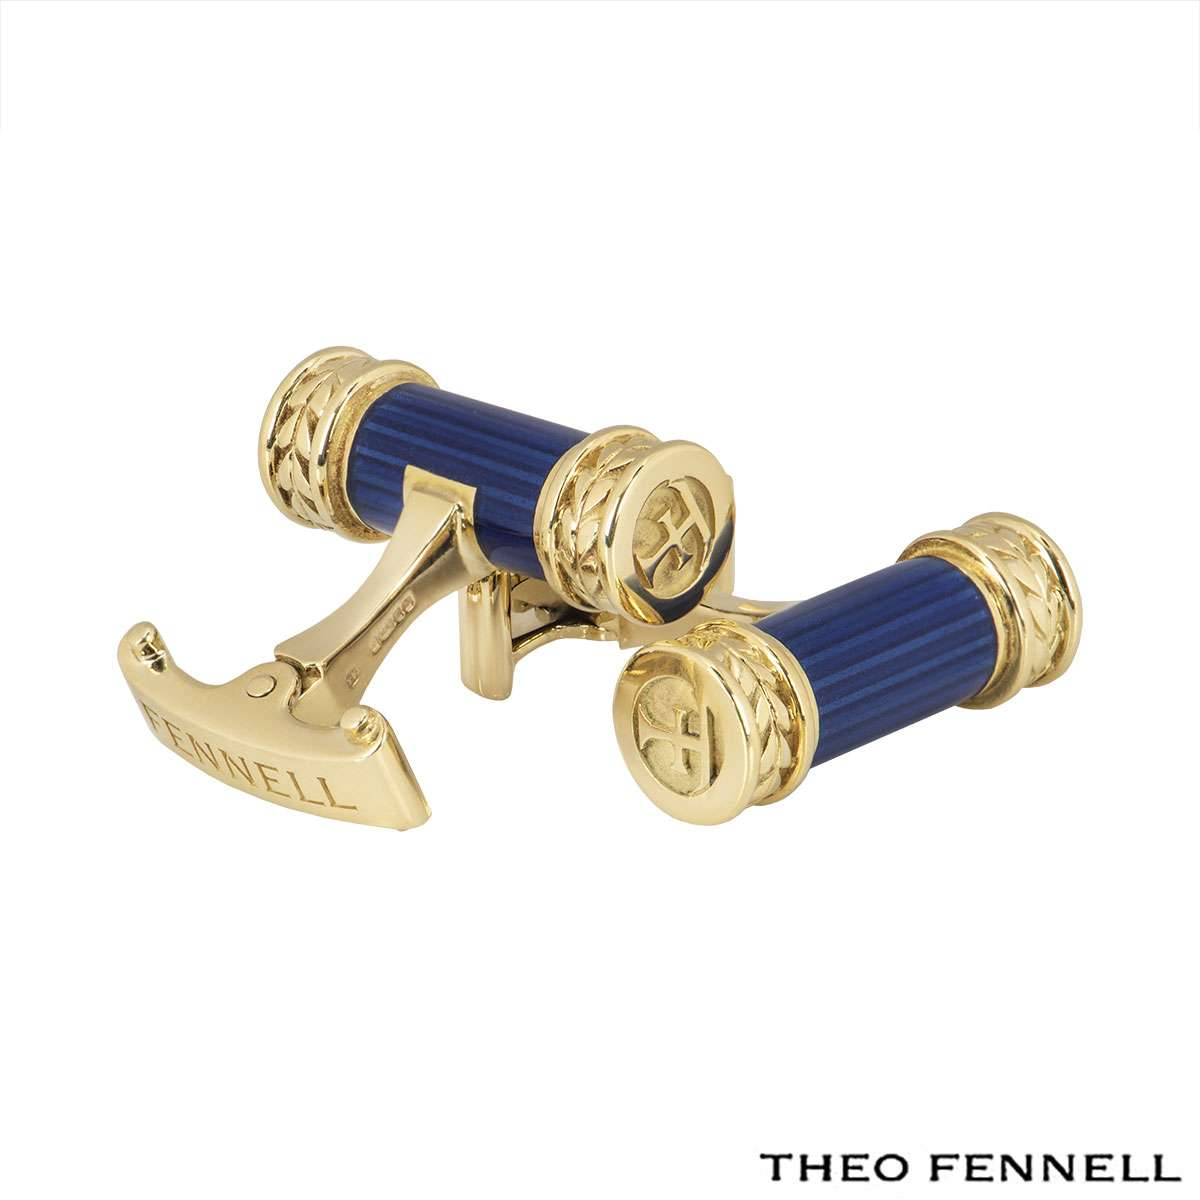 Theo Fennell Yellow Gold Blue Enamel Cufflinks